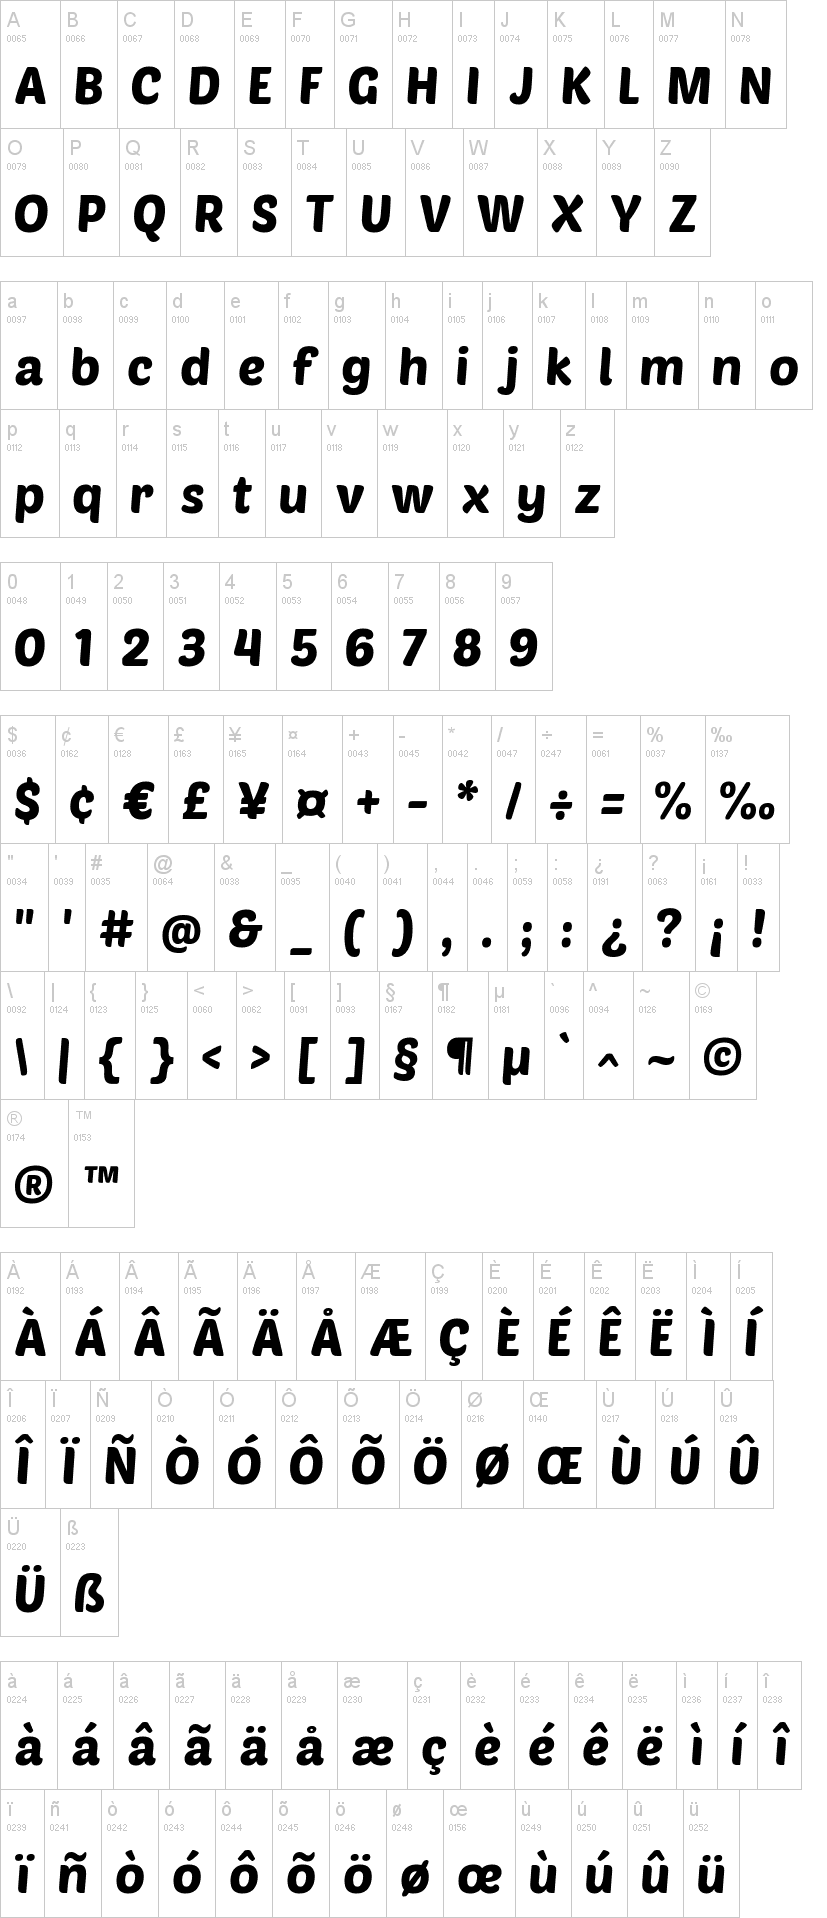 how to download a google font